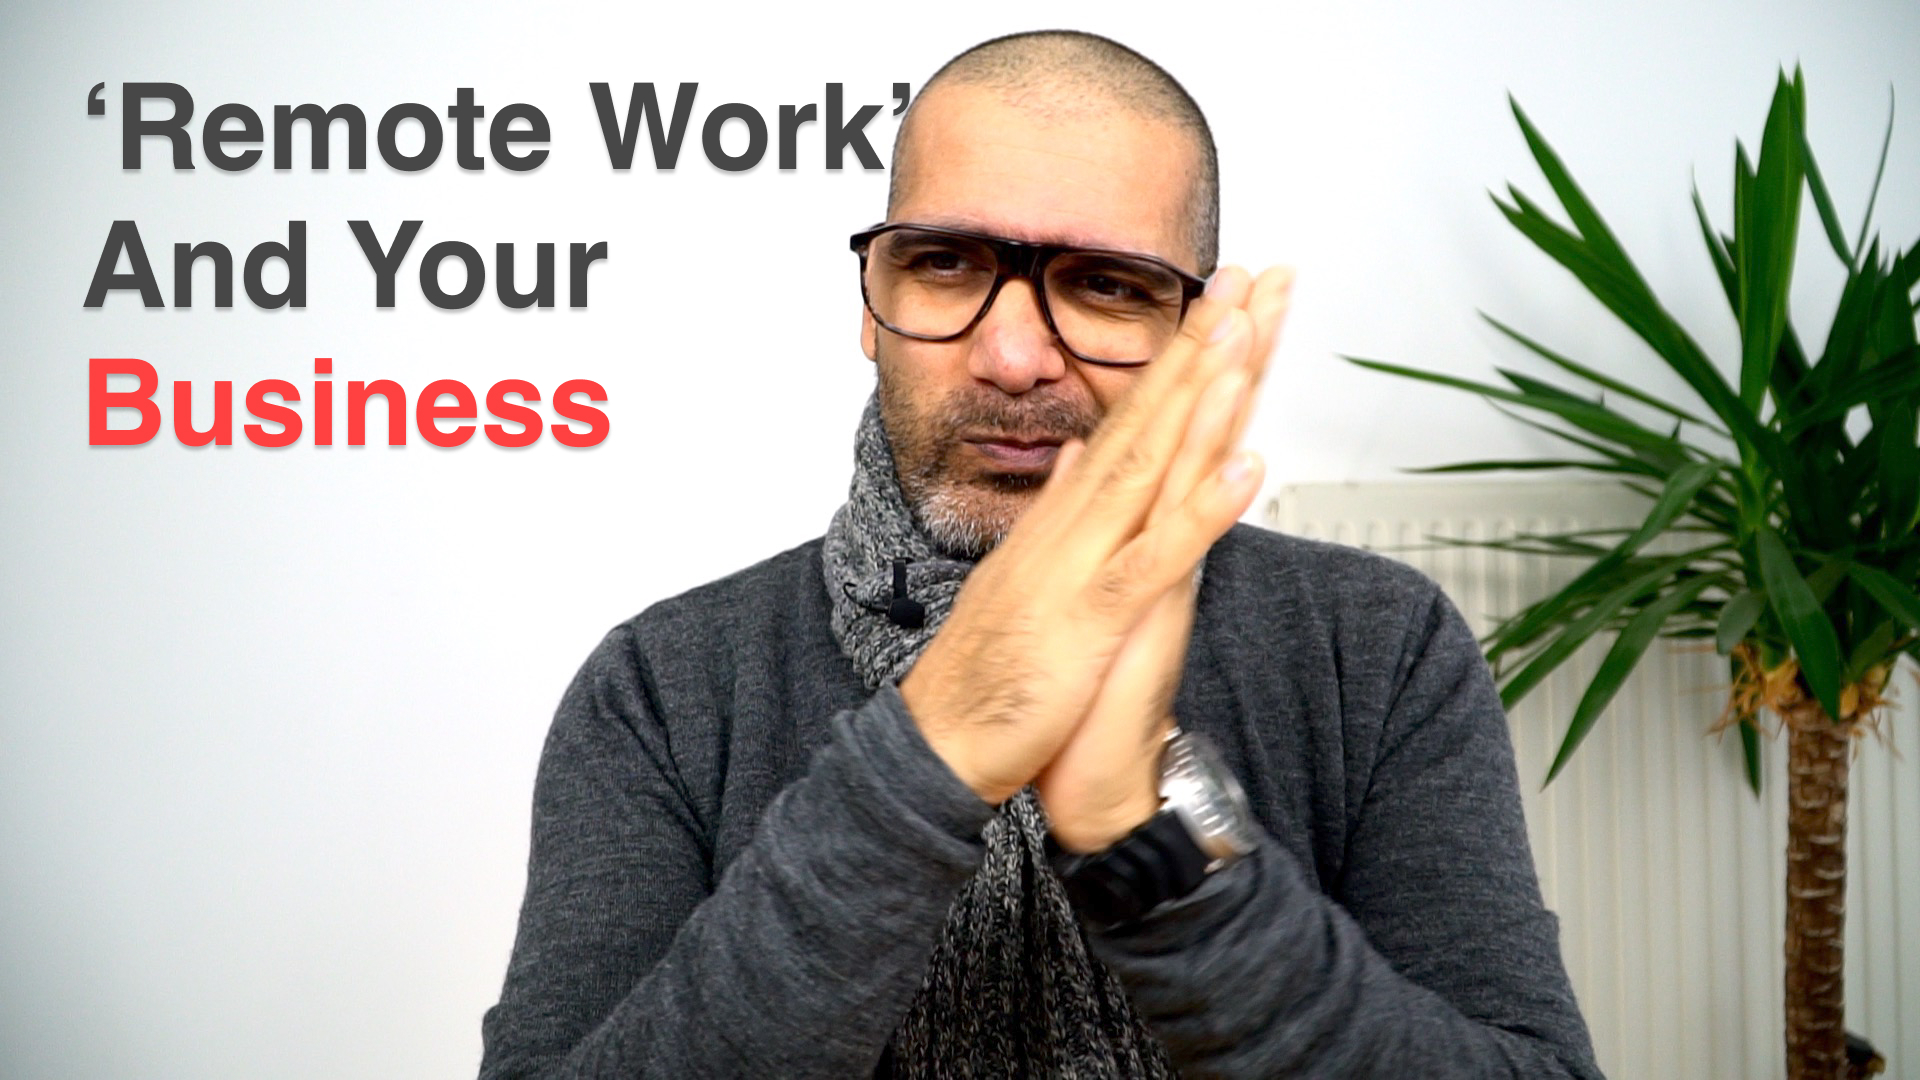 Remote work can help your business thrive